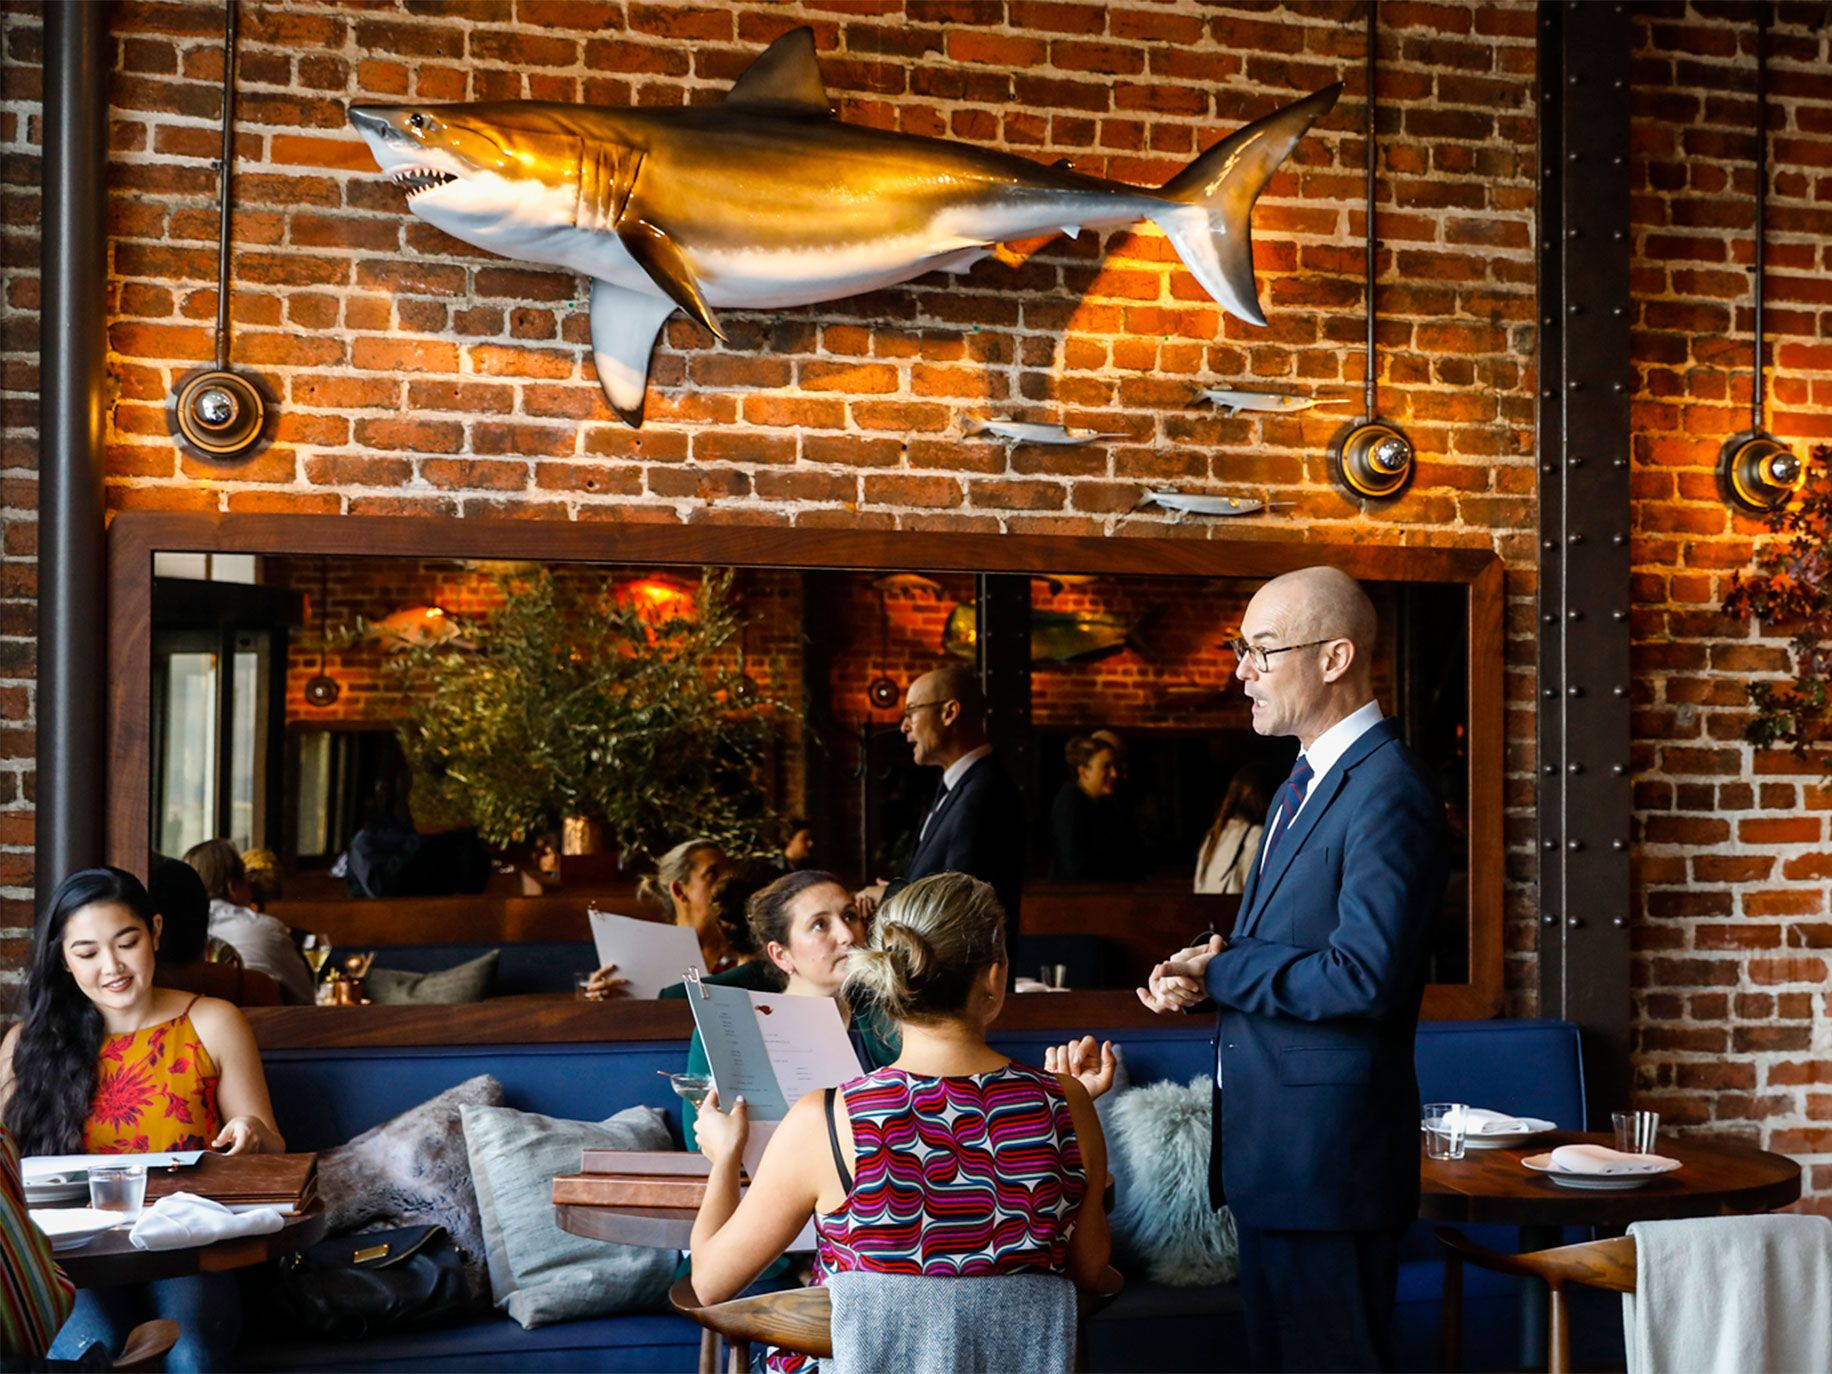 Angler's decor uses the original brick walls in the restaurant's interior that overlooks the Bay Bridge. Fish hung on the walls enhance the rustic ambiance.